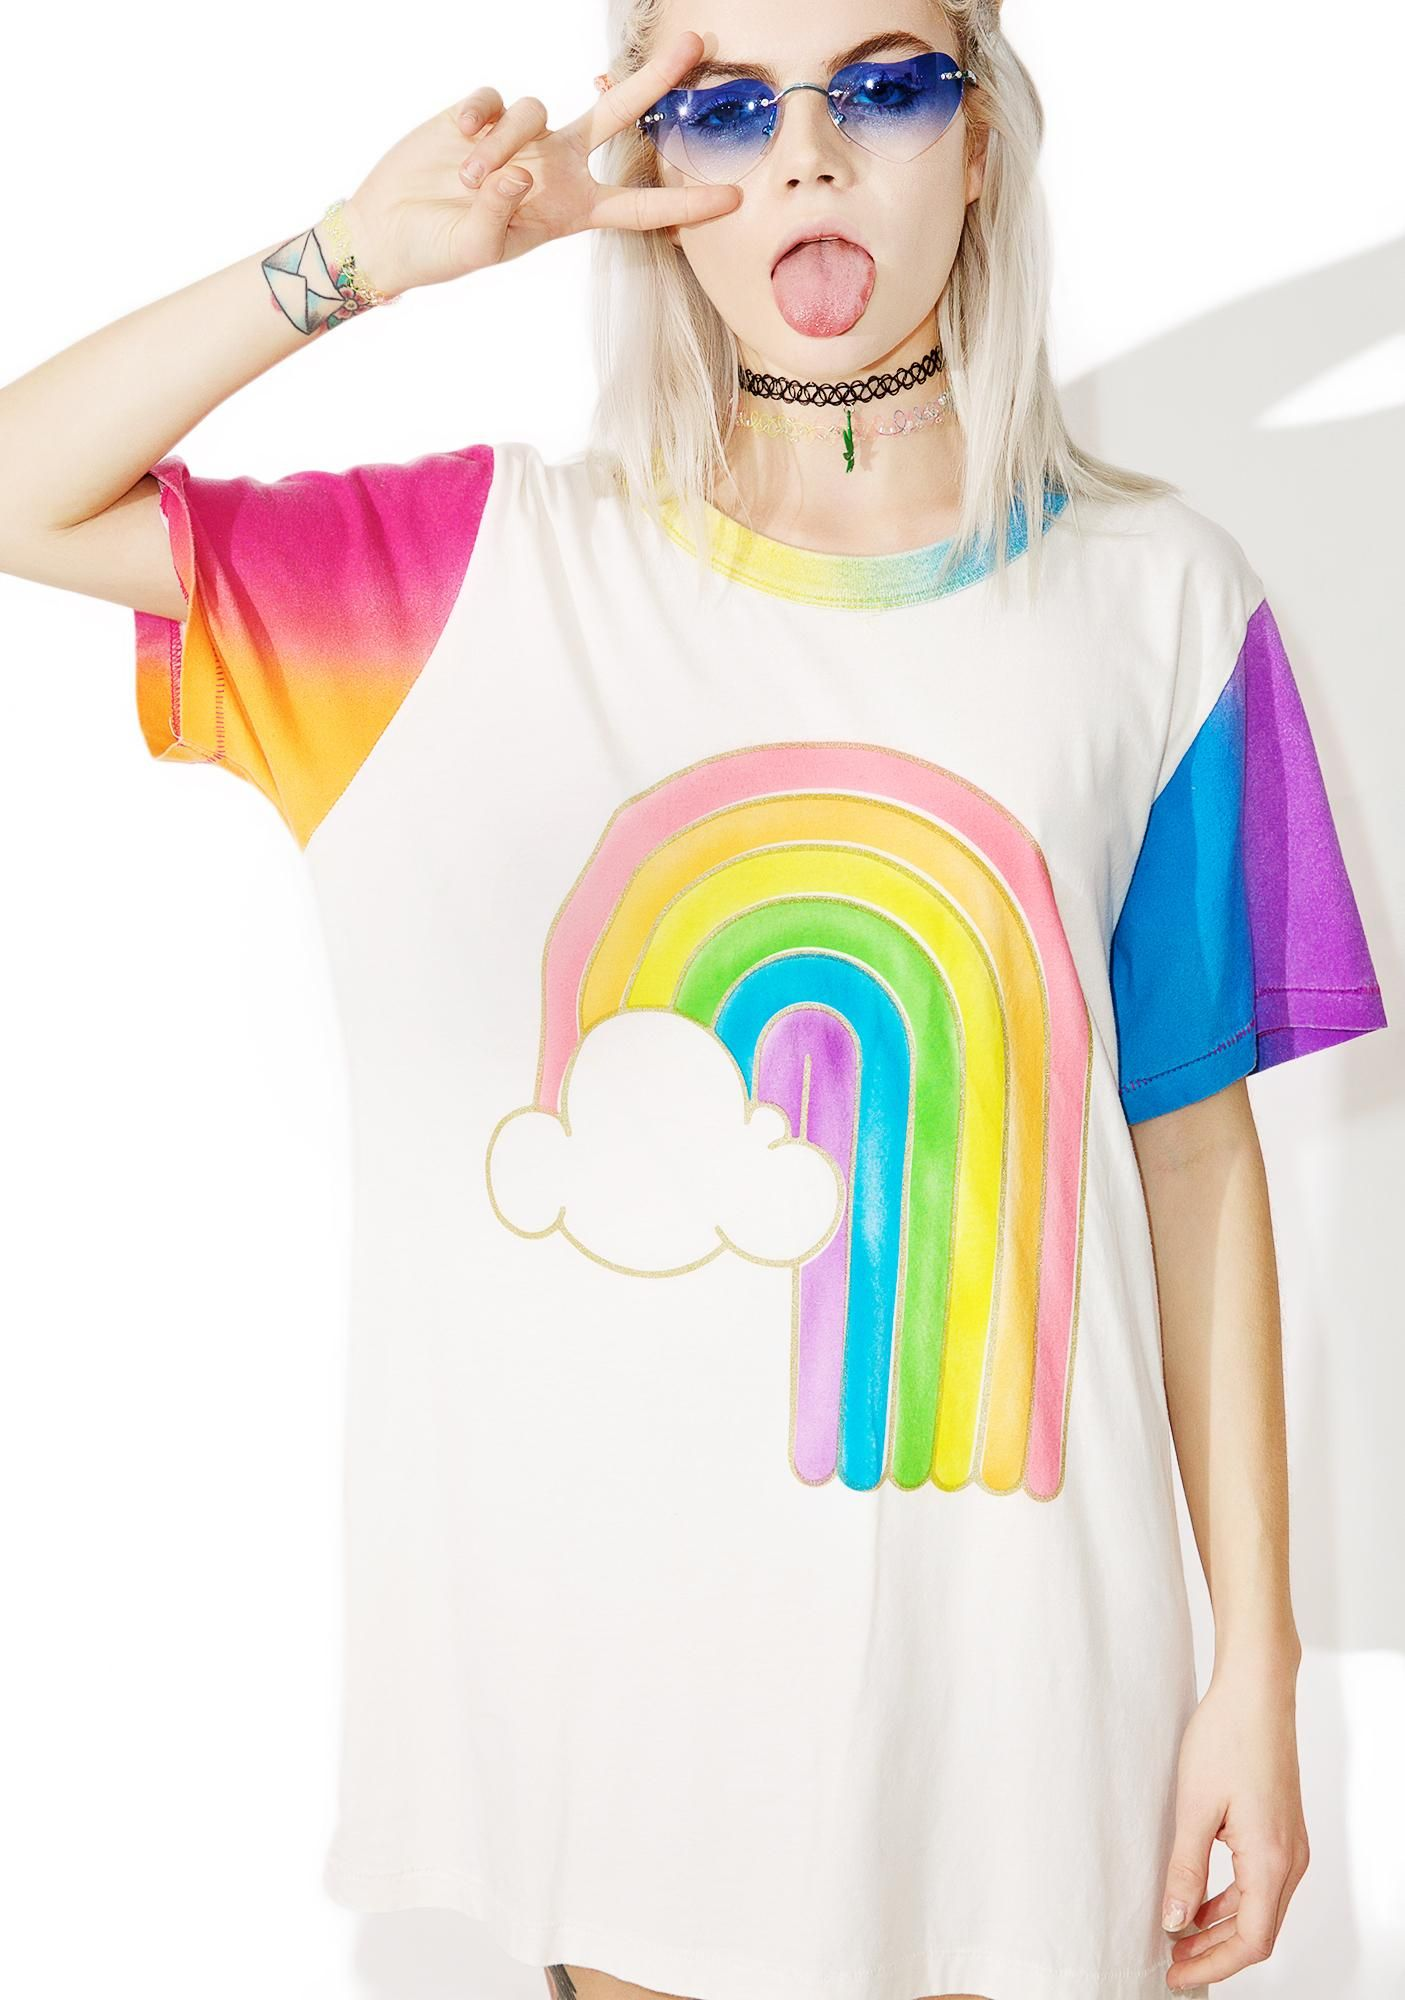 Big Bud Press Rainbow Tee is gunna shoot prisms into tha sky, bb! This dope oversized tee features a comfy white cotton construction, gradient sleeves 'N trim, and cutesy rainbow graphic across the front.